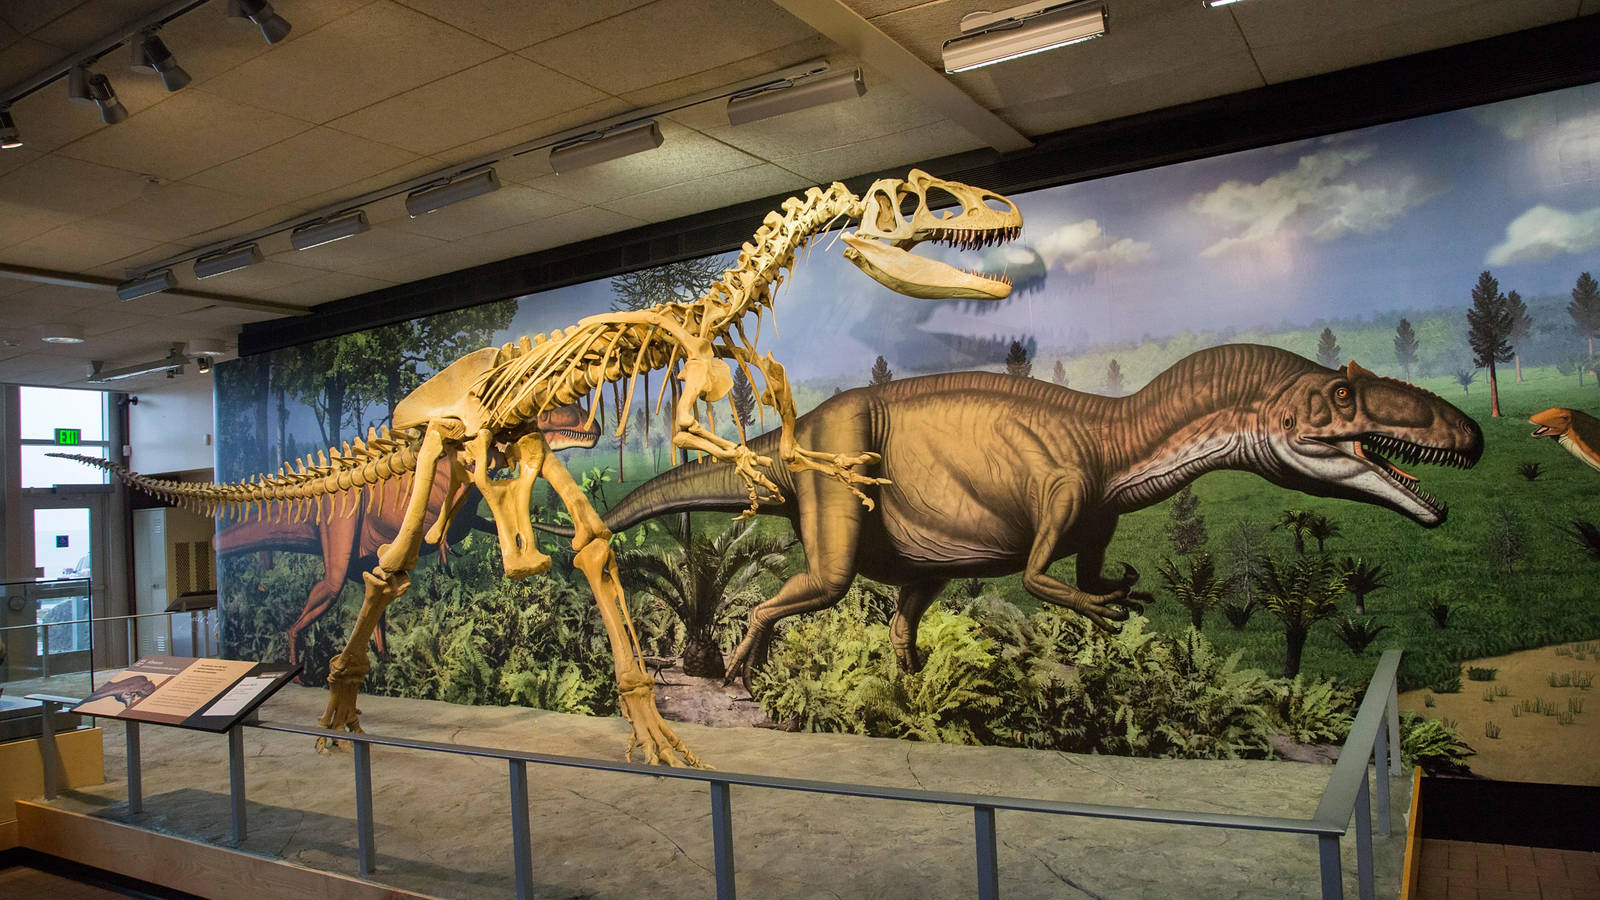 Radio carbon dating can be used to find the age of dinosaur fossils